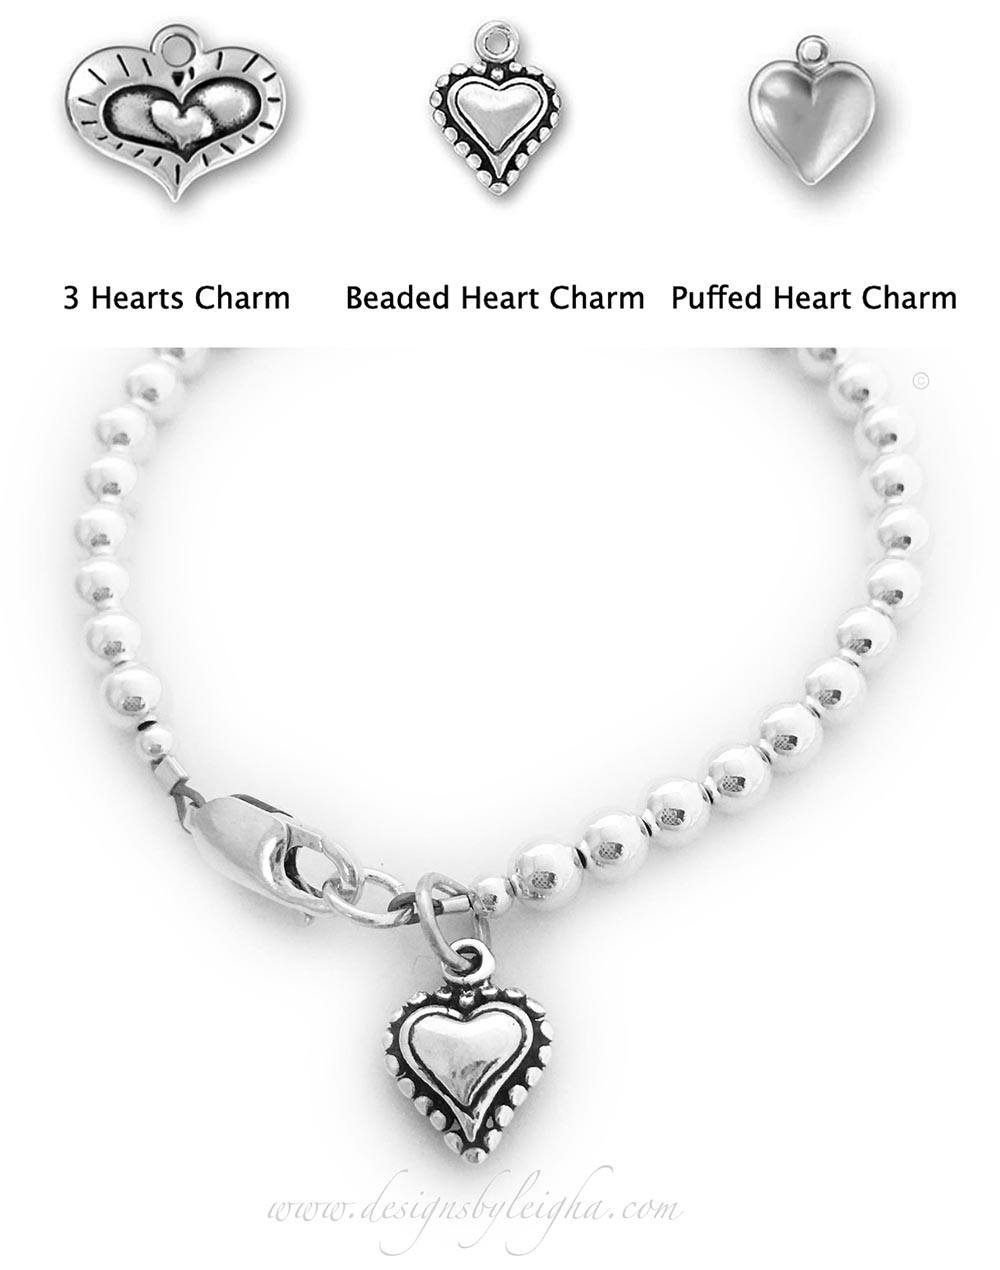 DBL-Val-10-Beaded-Heart-Charm  This Heart Bracelet is shown with a Beaded Heart Charm and shown with a lobster claw clasp.